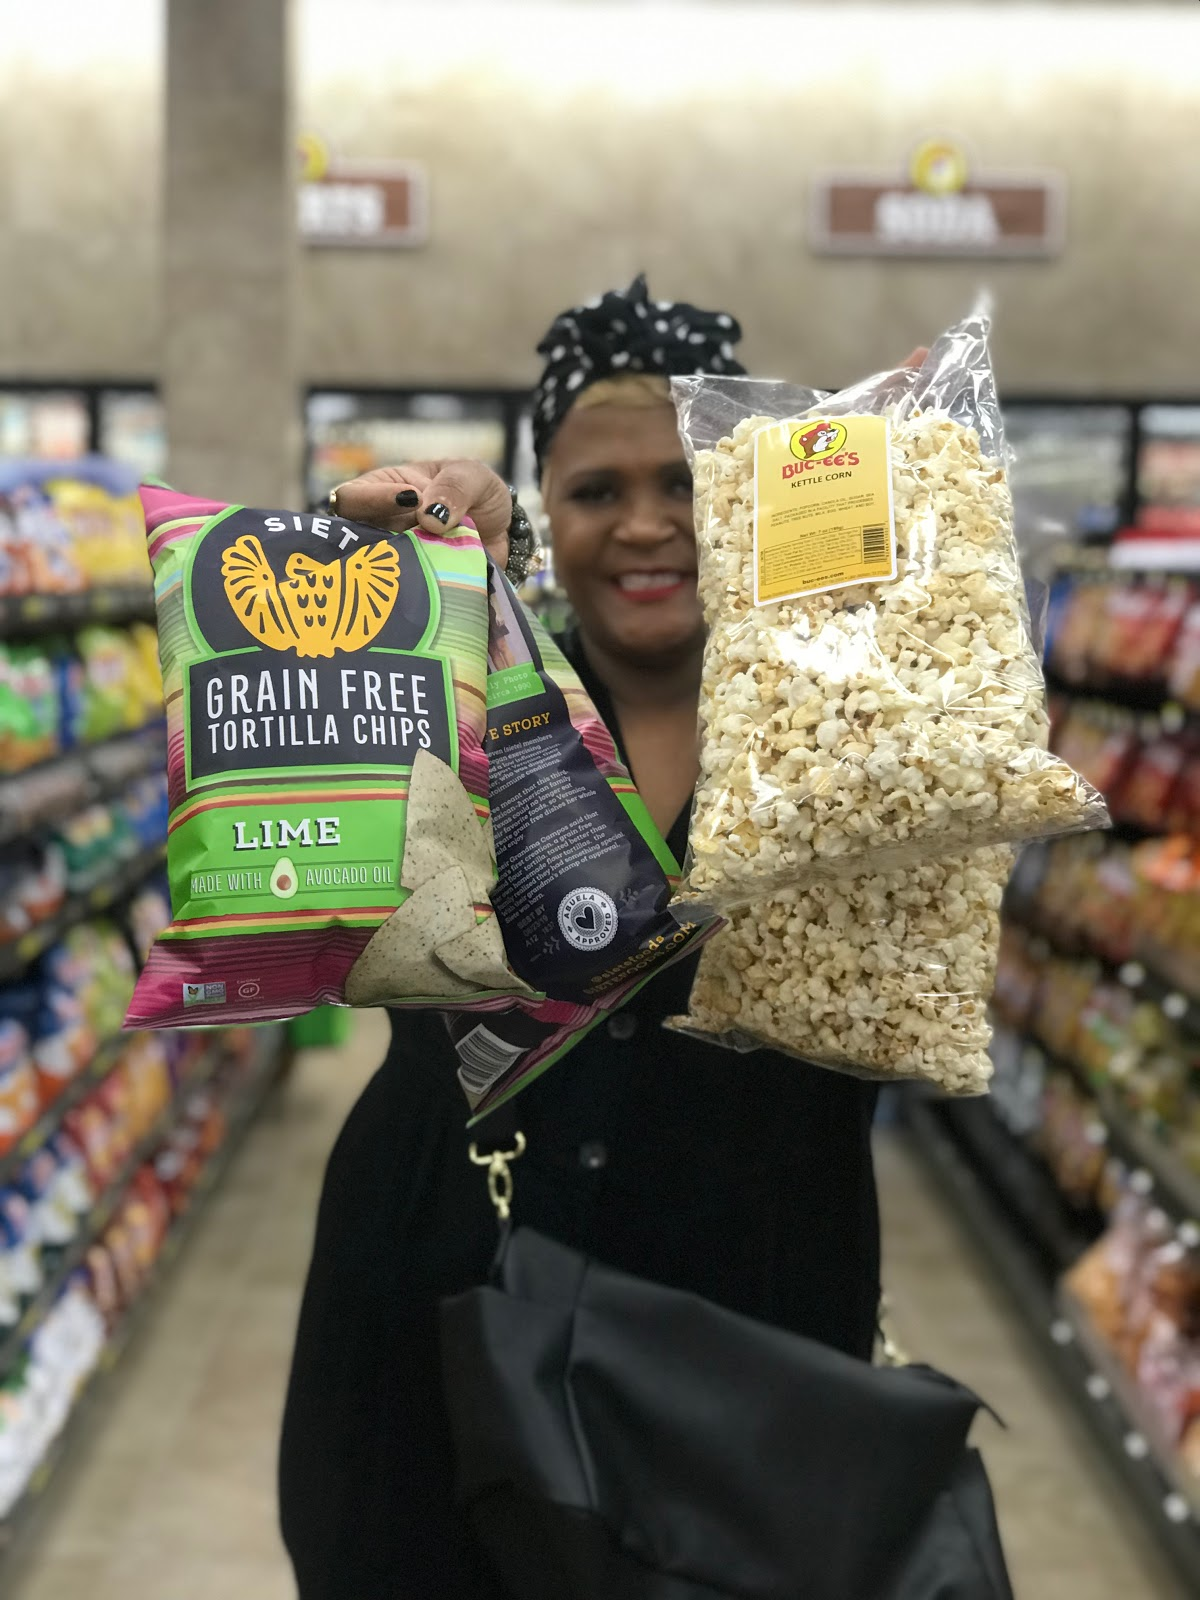 Image: Woman Tangie Bell buying popcorn chips and having fun dancing down the aisles of Buccee's gas station. Seen first on Bits and Babbles Blog